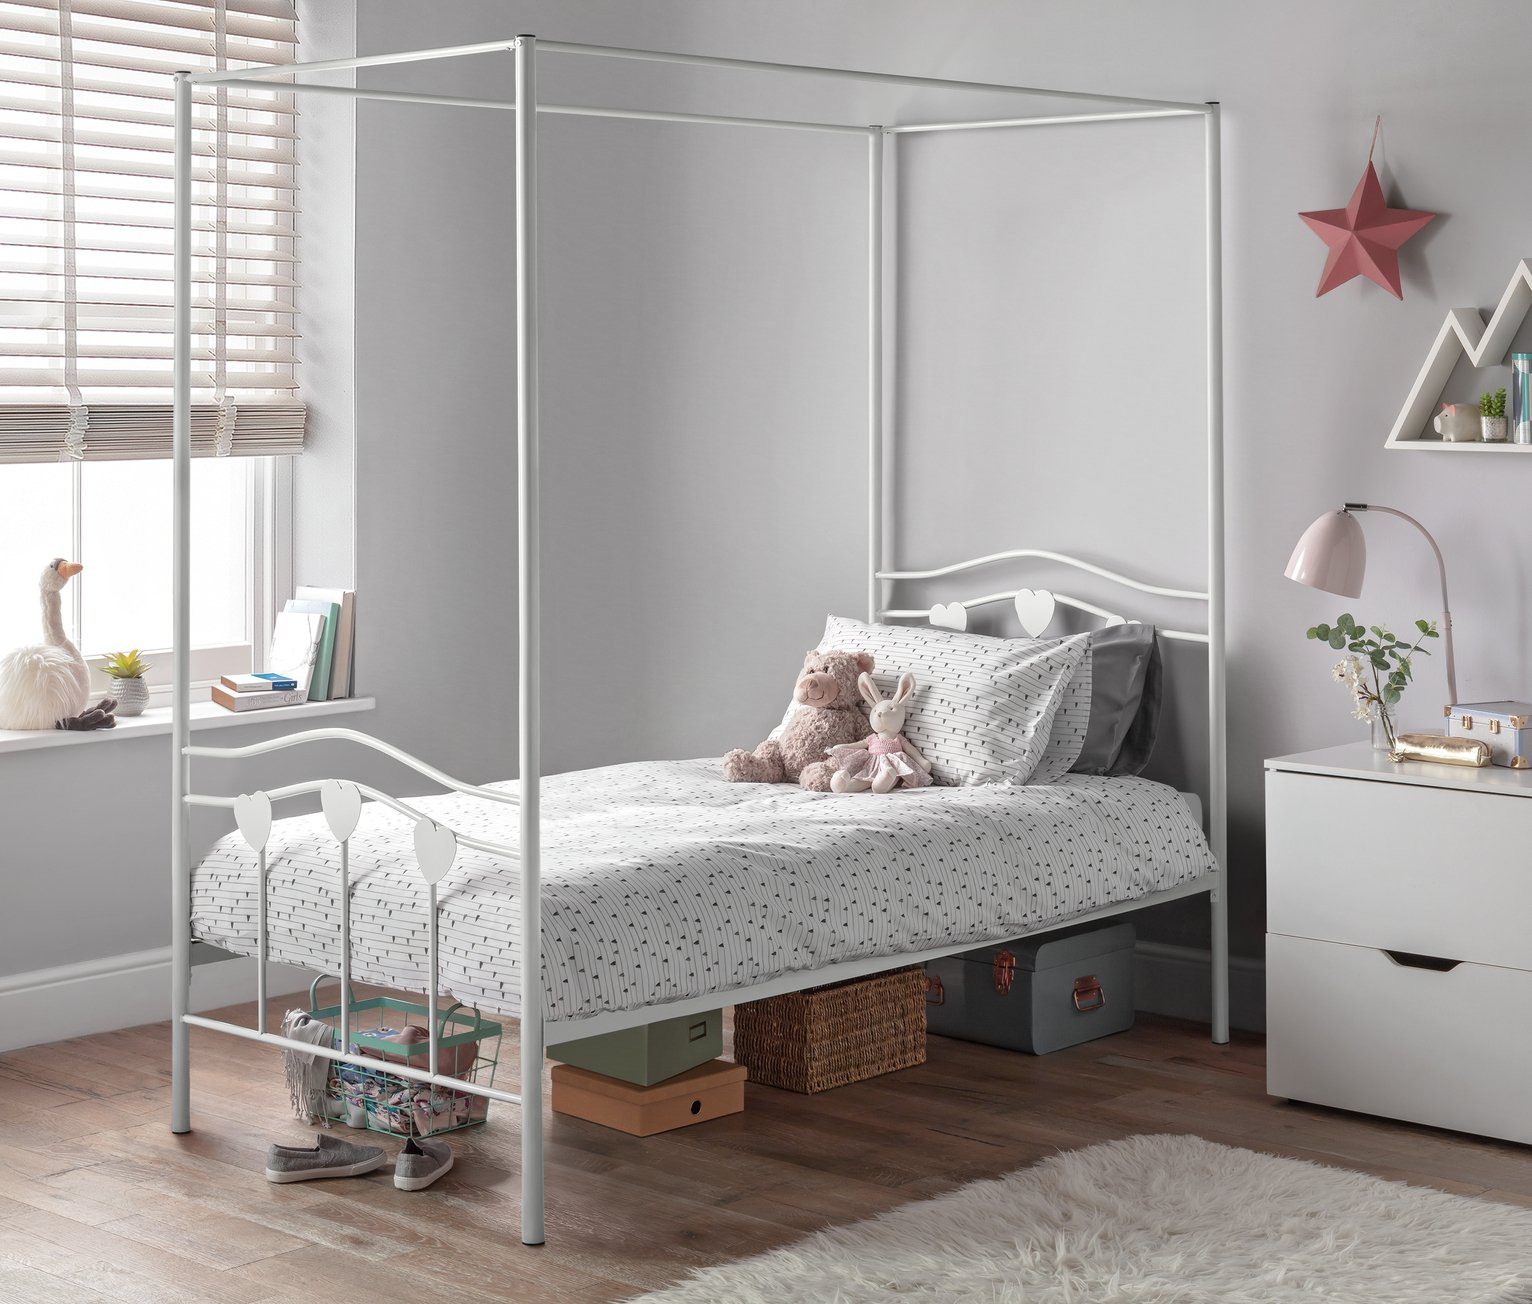 Argos Home Hearts Single 4 Poster Metal Bed Frame - White